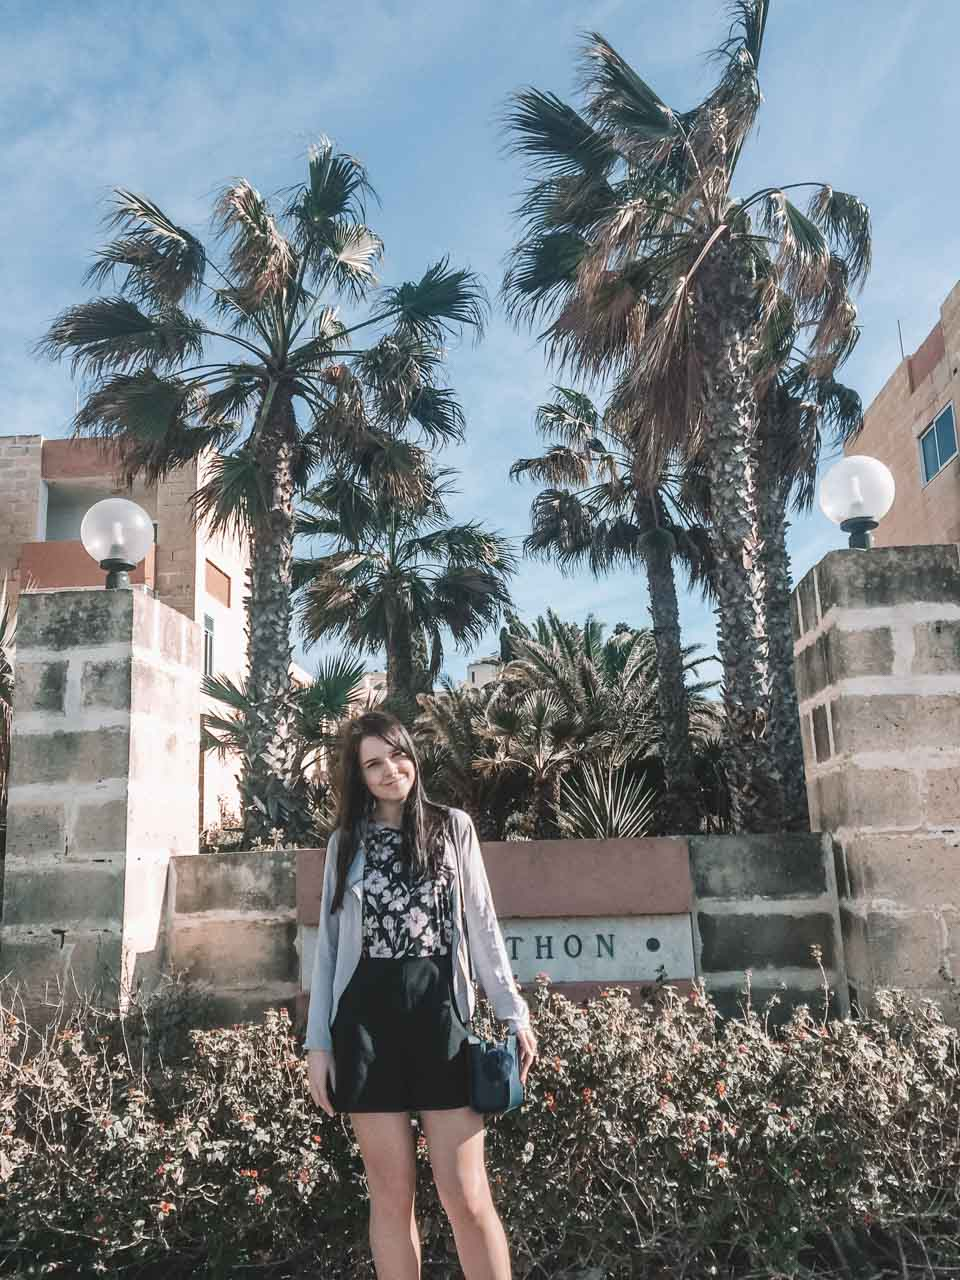 A girl standing next to palm trees and a traditional house in Bugibba, Malta